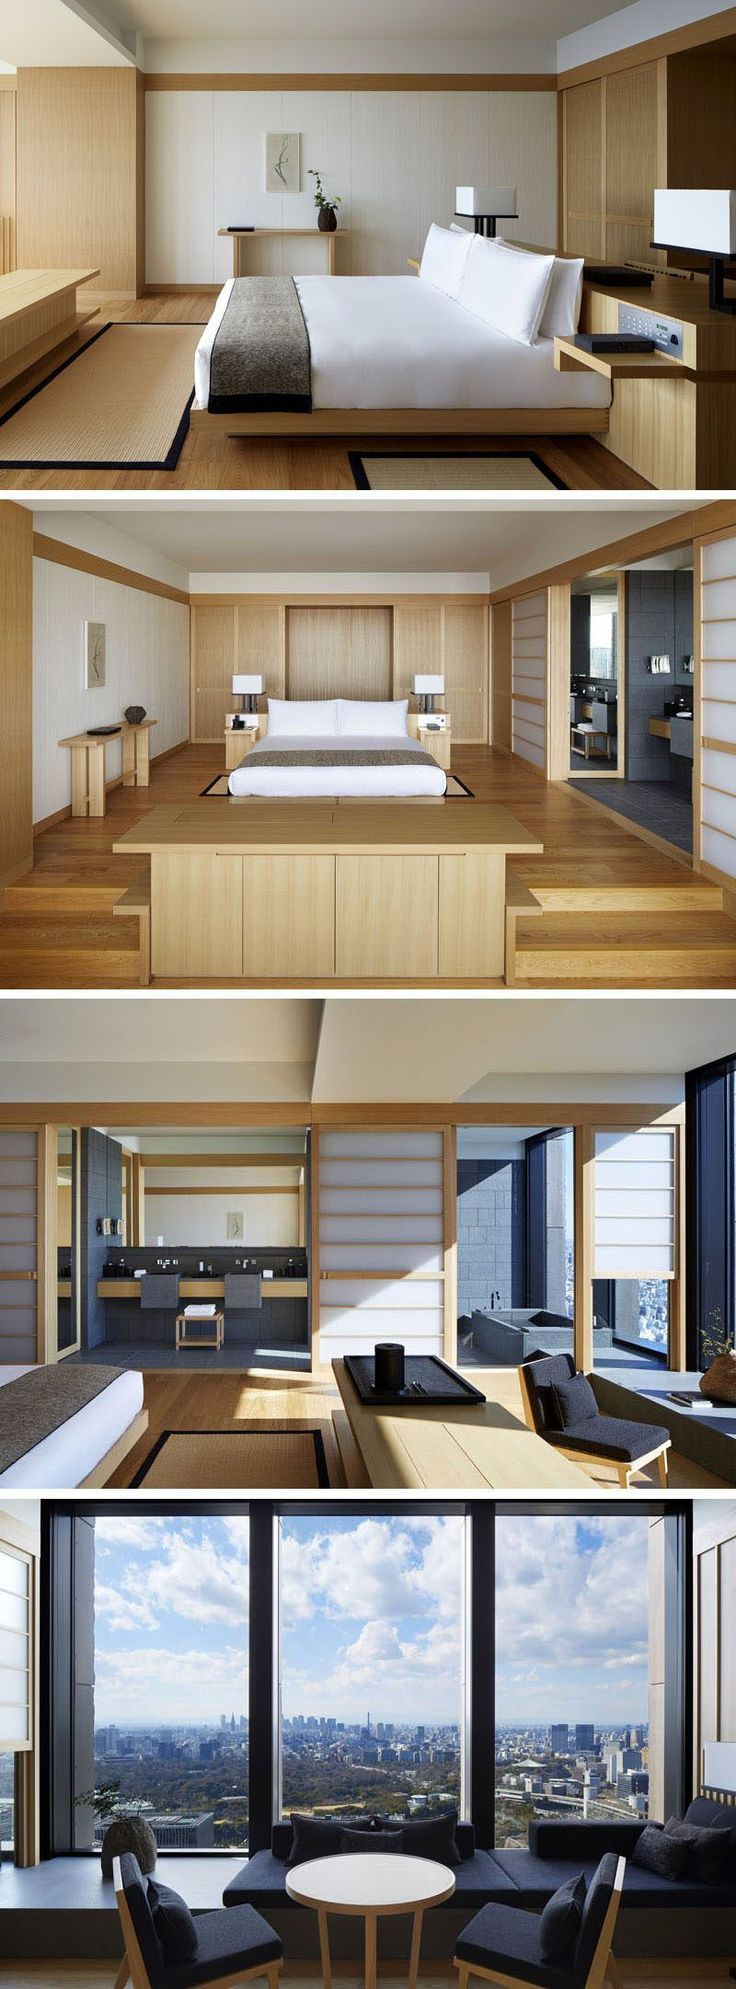 How To Mix Contemporary Interior Design With Elements Of Japanese Culture 4